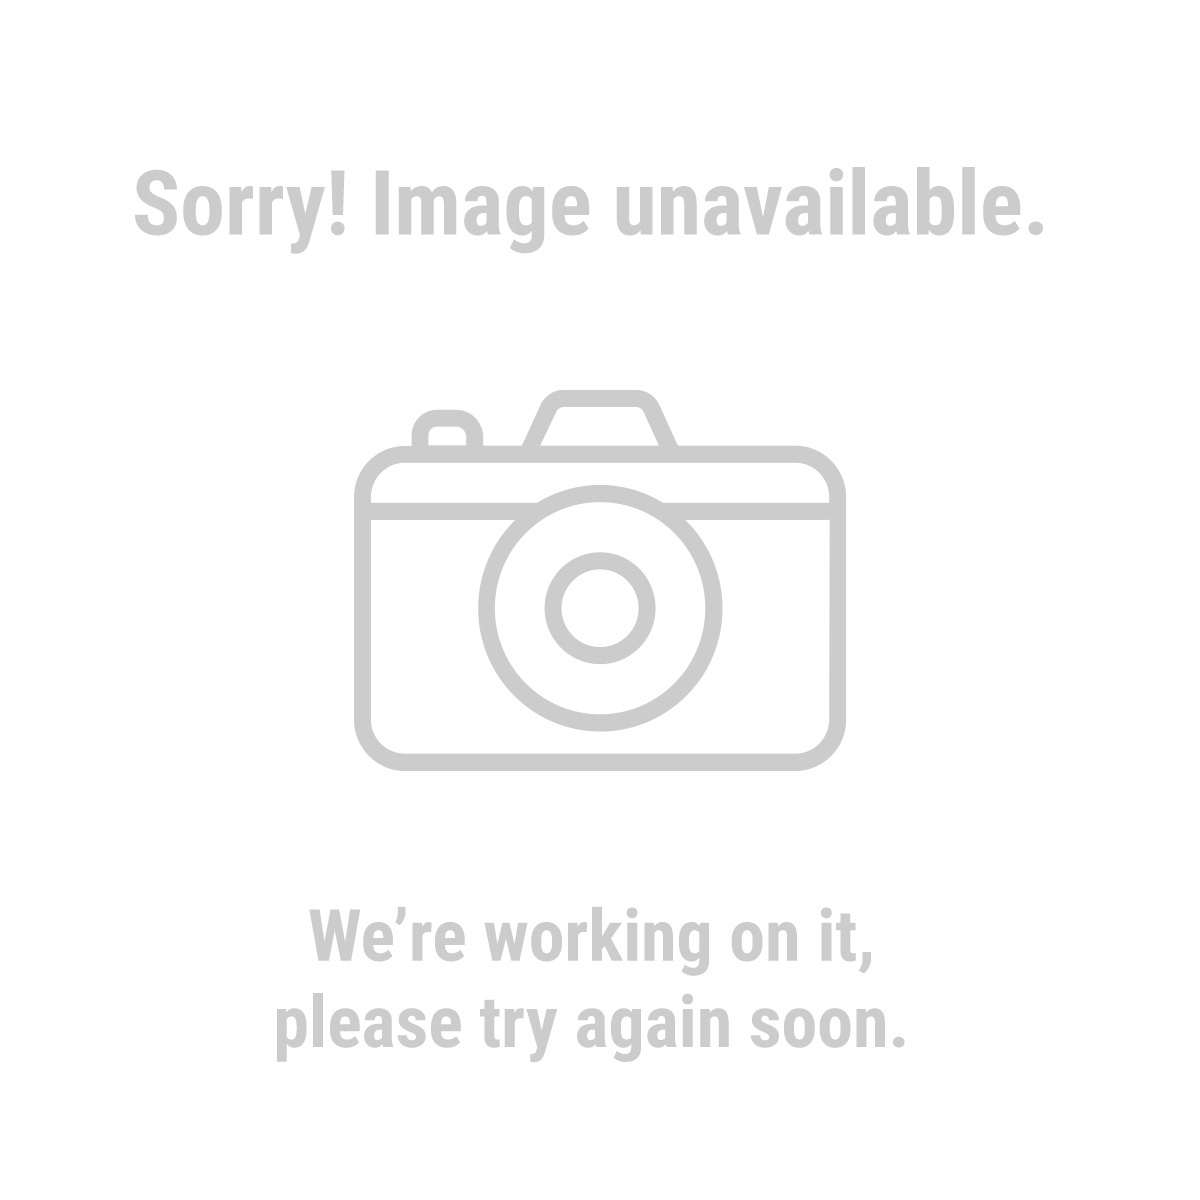 Cen-Tech 90899 7 Function Digital Multimeter